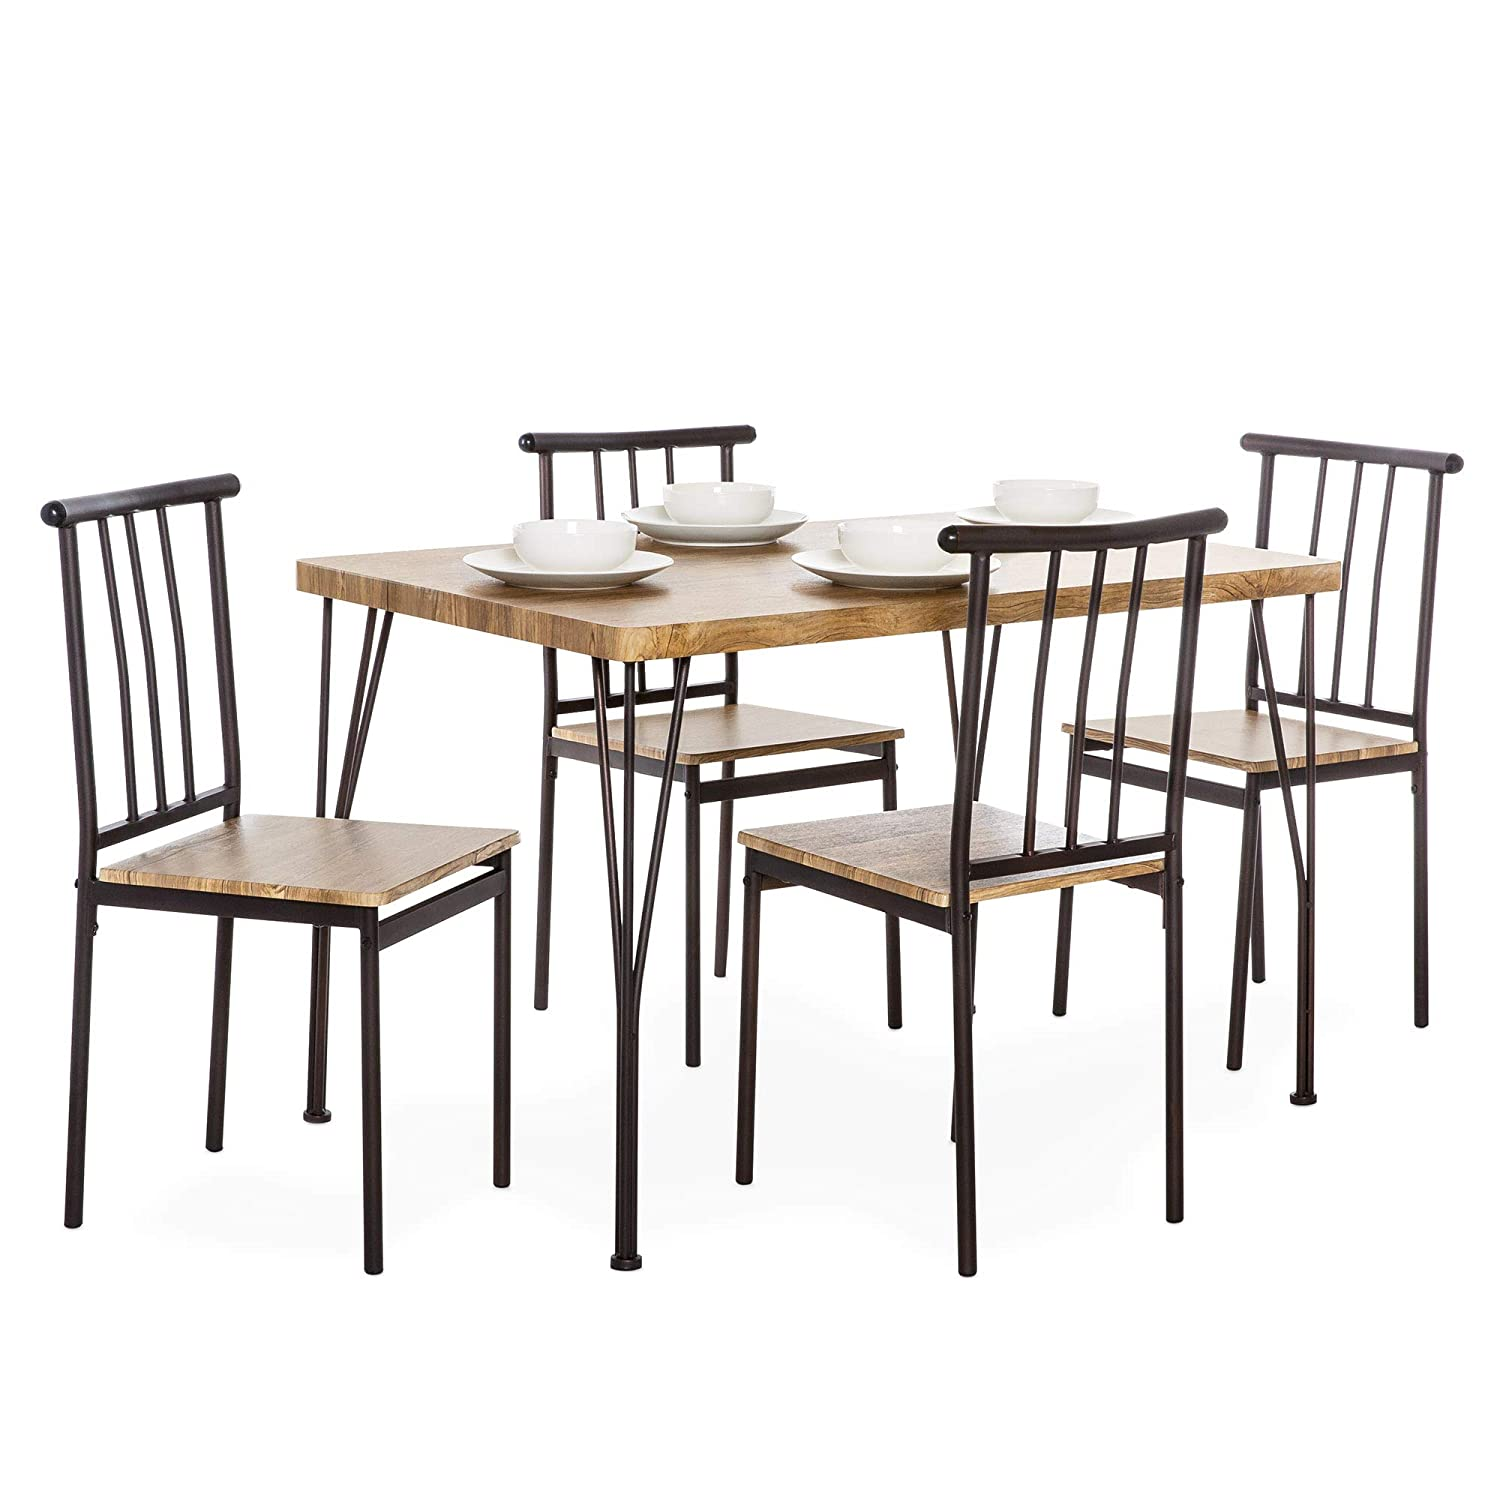 Amazon com best choice products 5 piece indoor modern metal and wood rectangular dining table furniture set w 4 chairs brown table chair sets